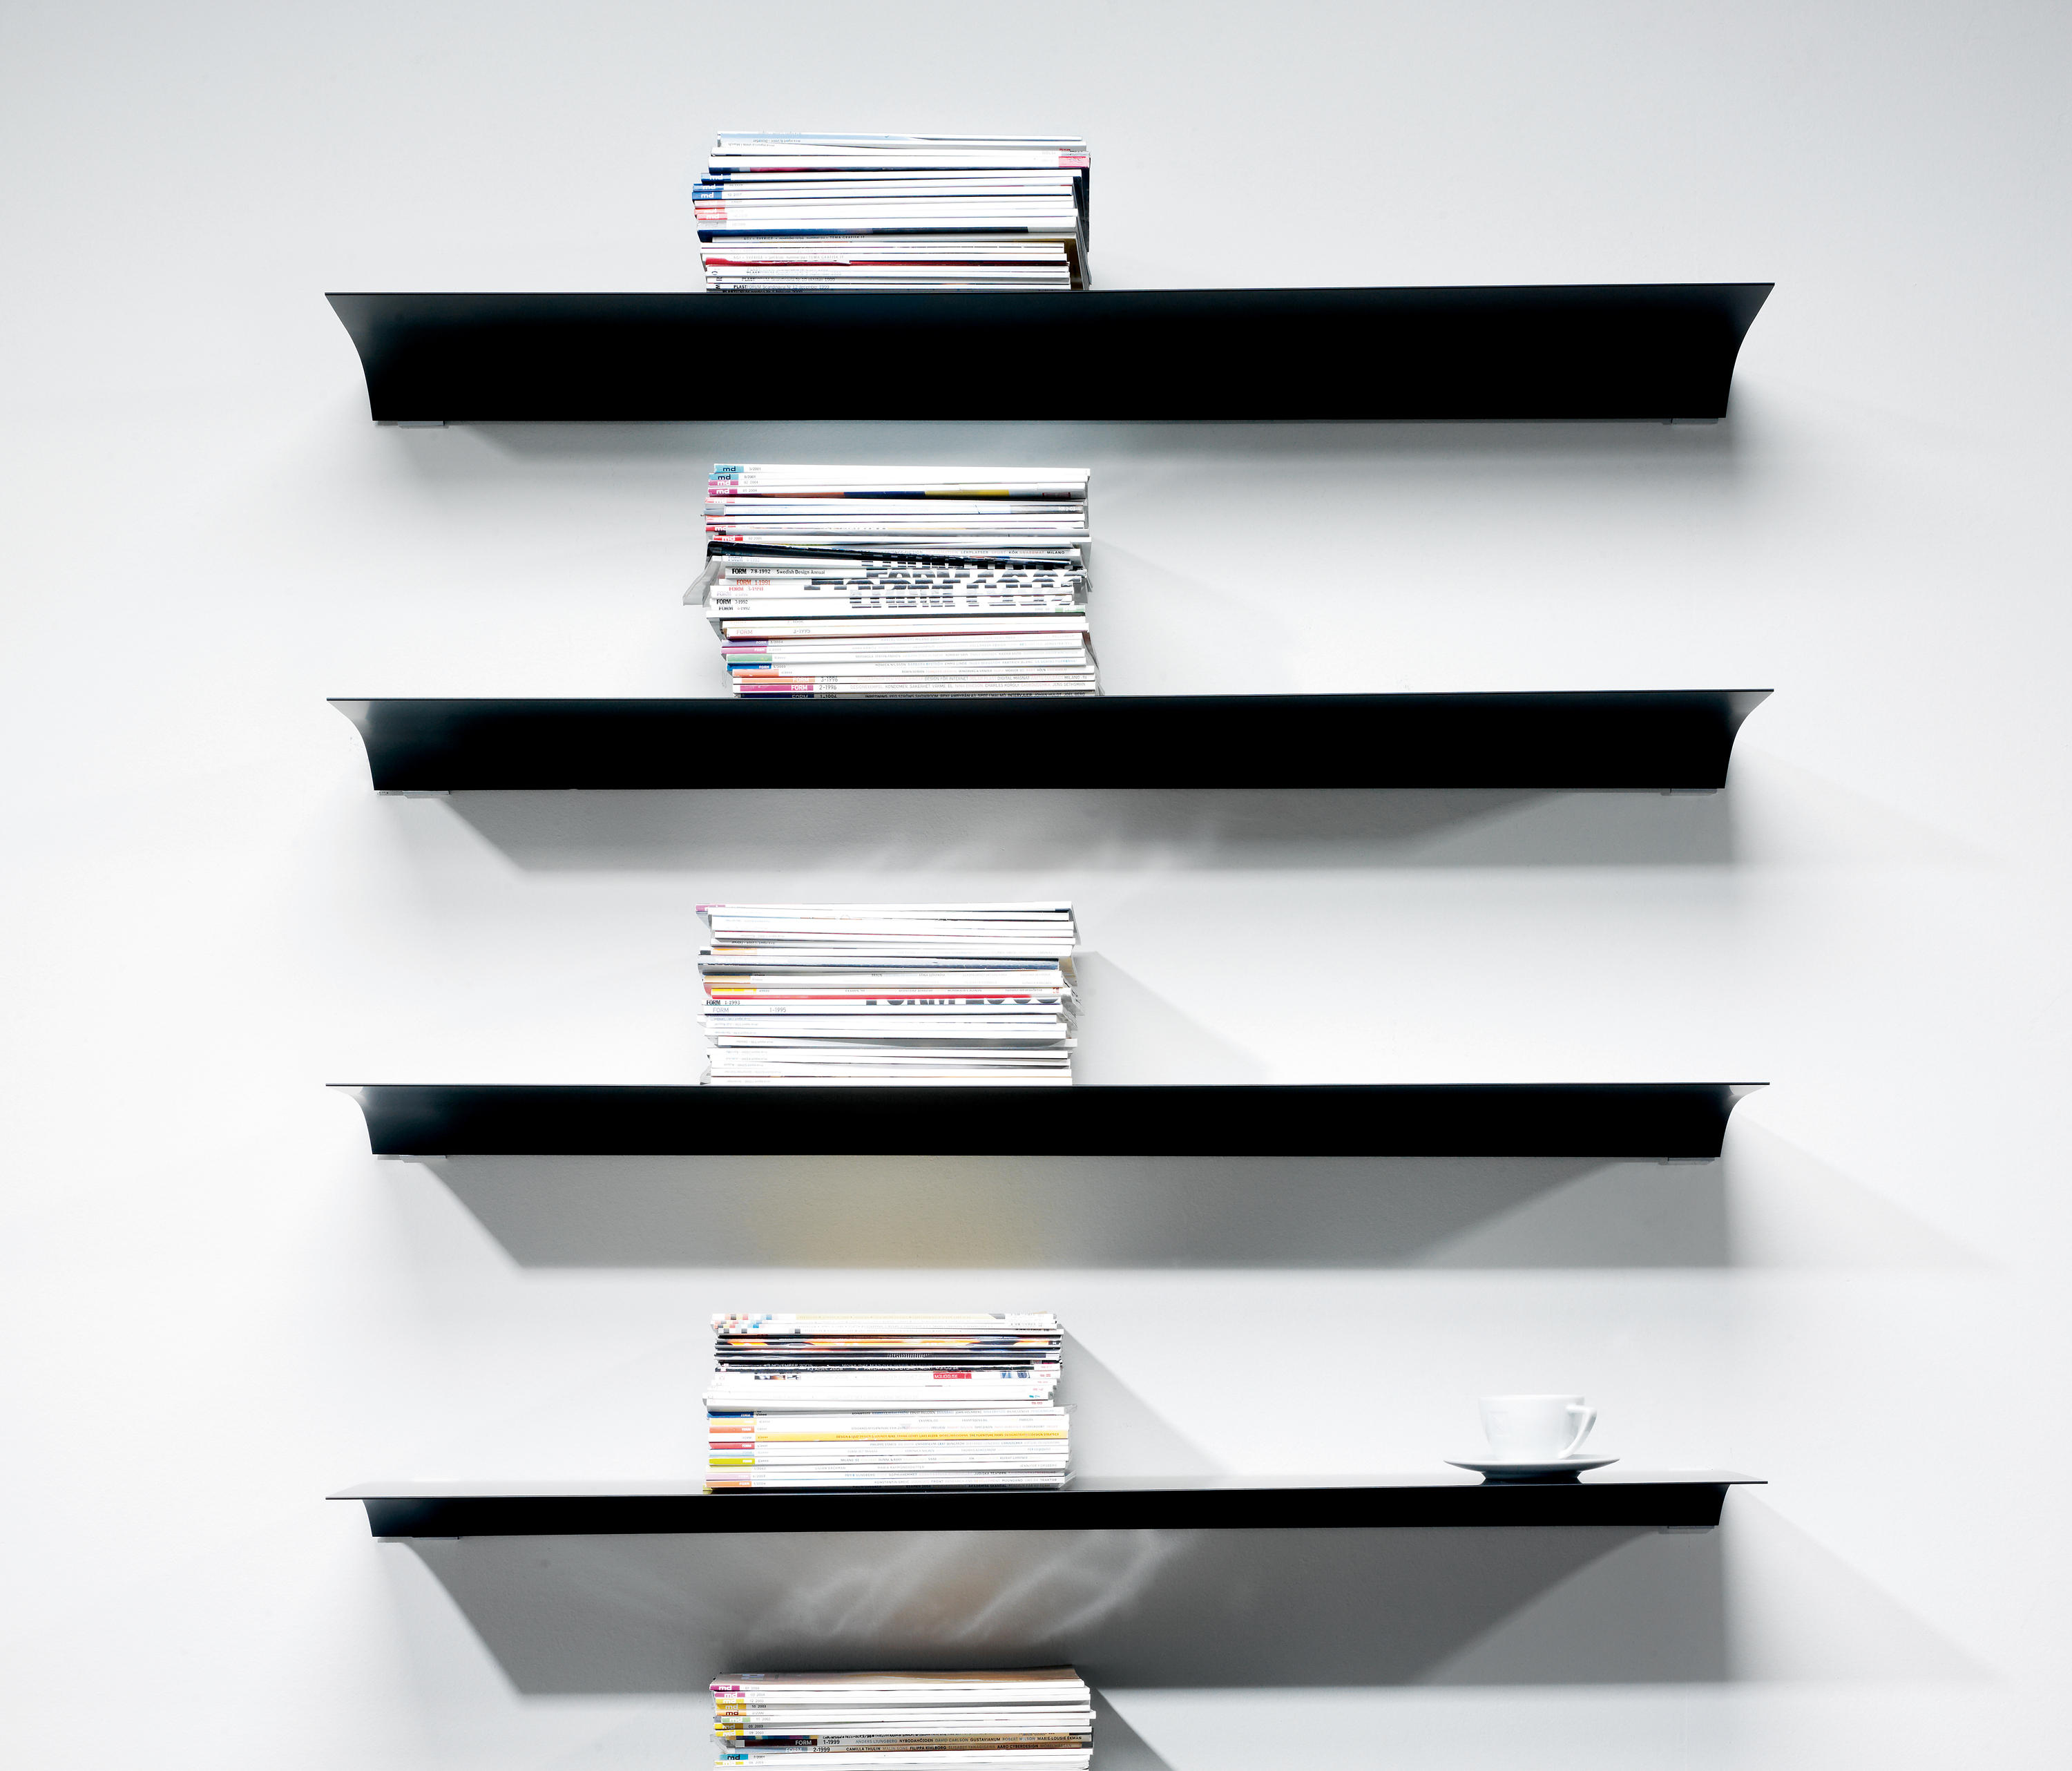 Exilis Wall-Mounted by nonuform | Office shelving systems ...